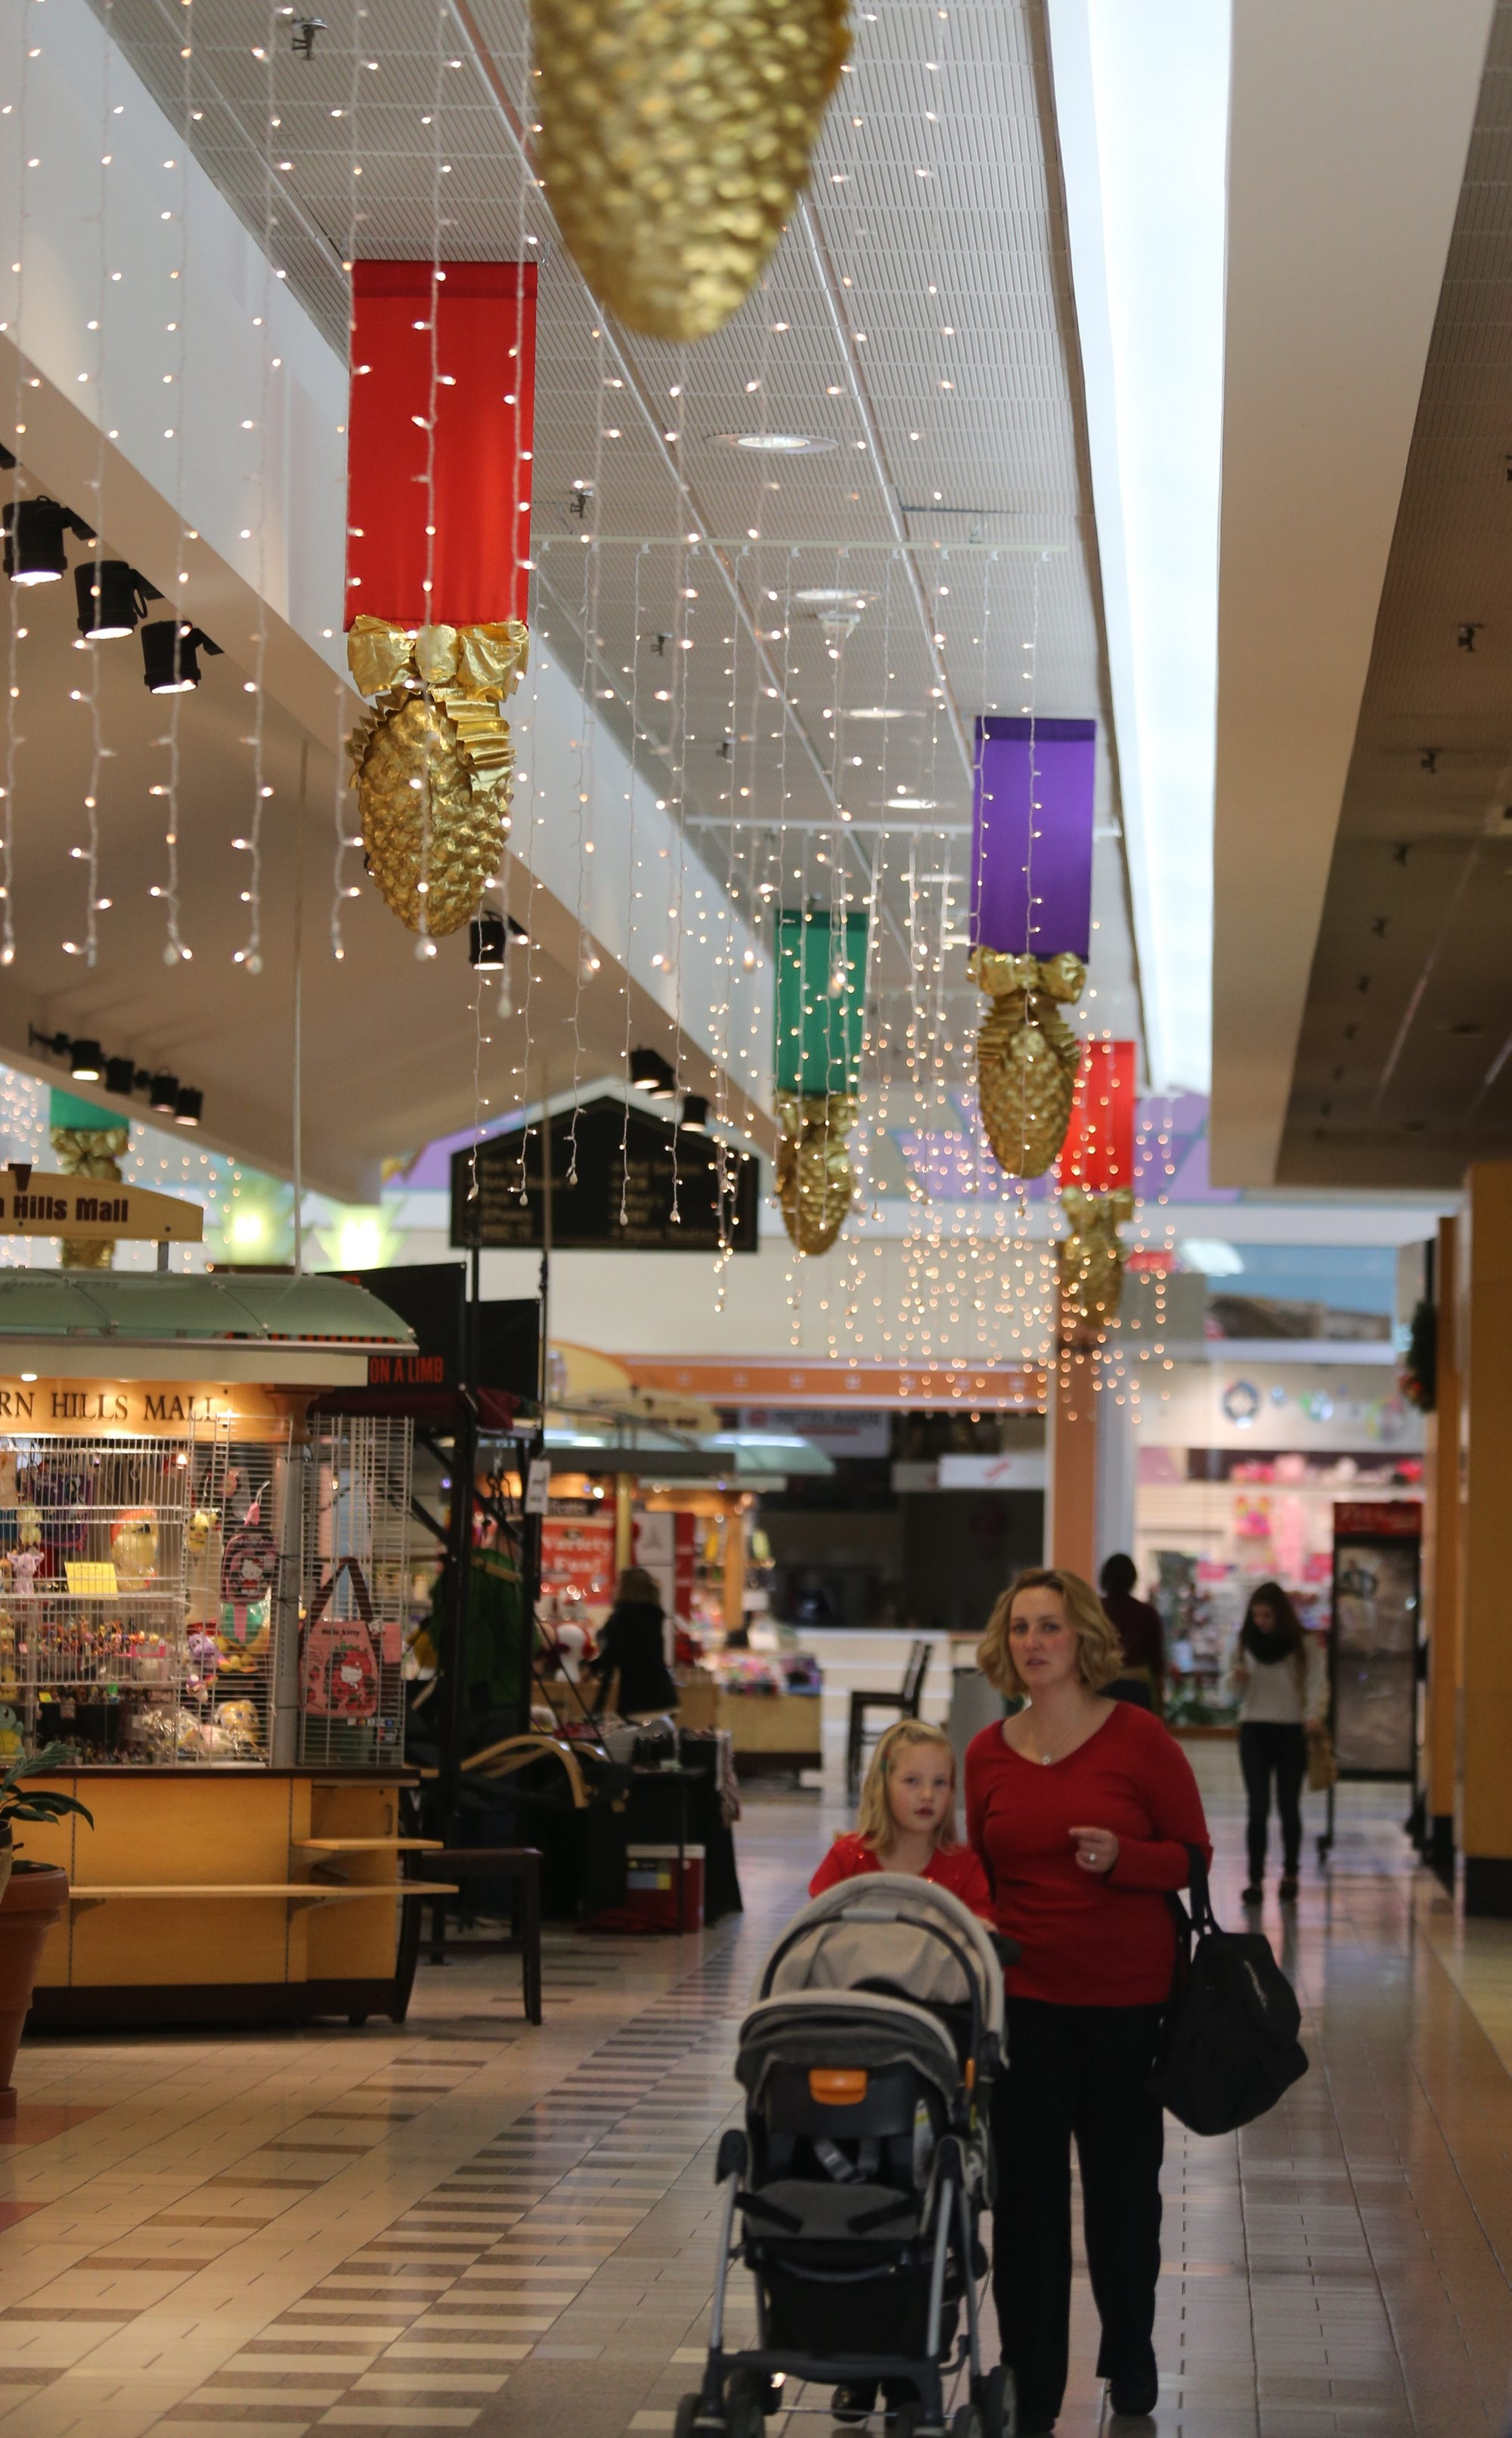 Holiday decorations are up and the retailers are ready for the seasonal shoppers at the Eastern Hills Mall in Clarence.